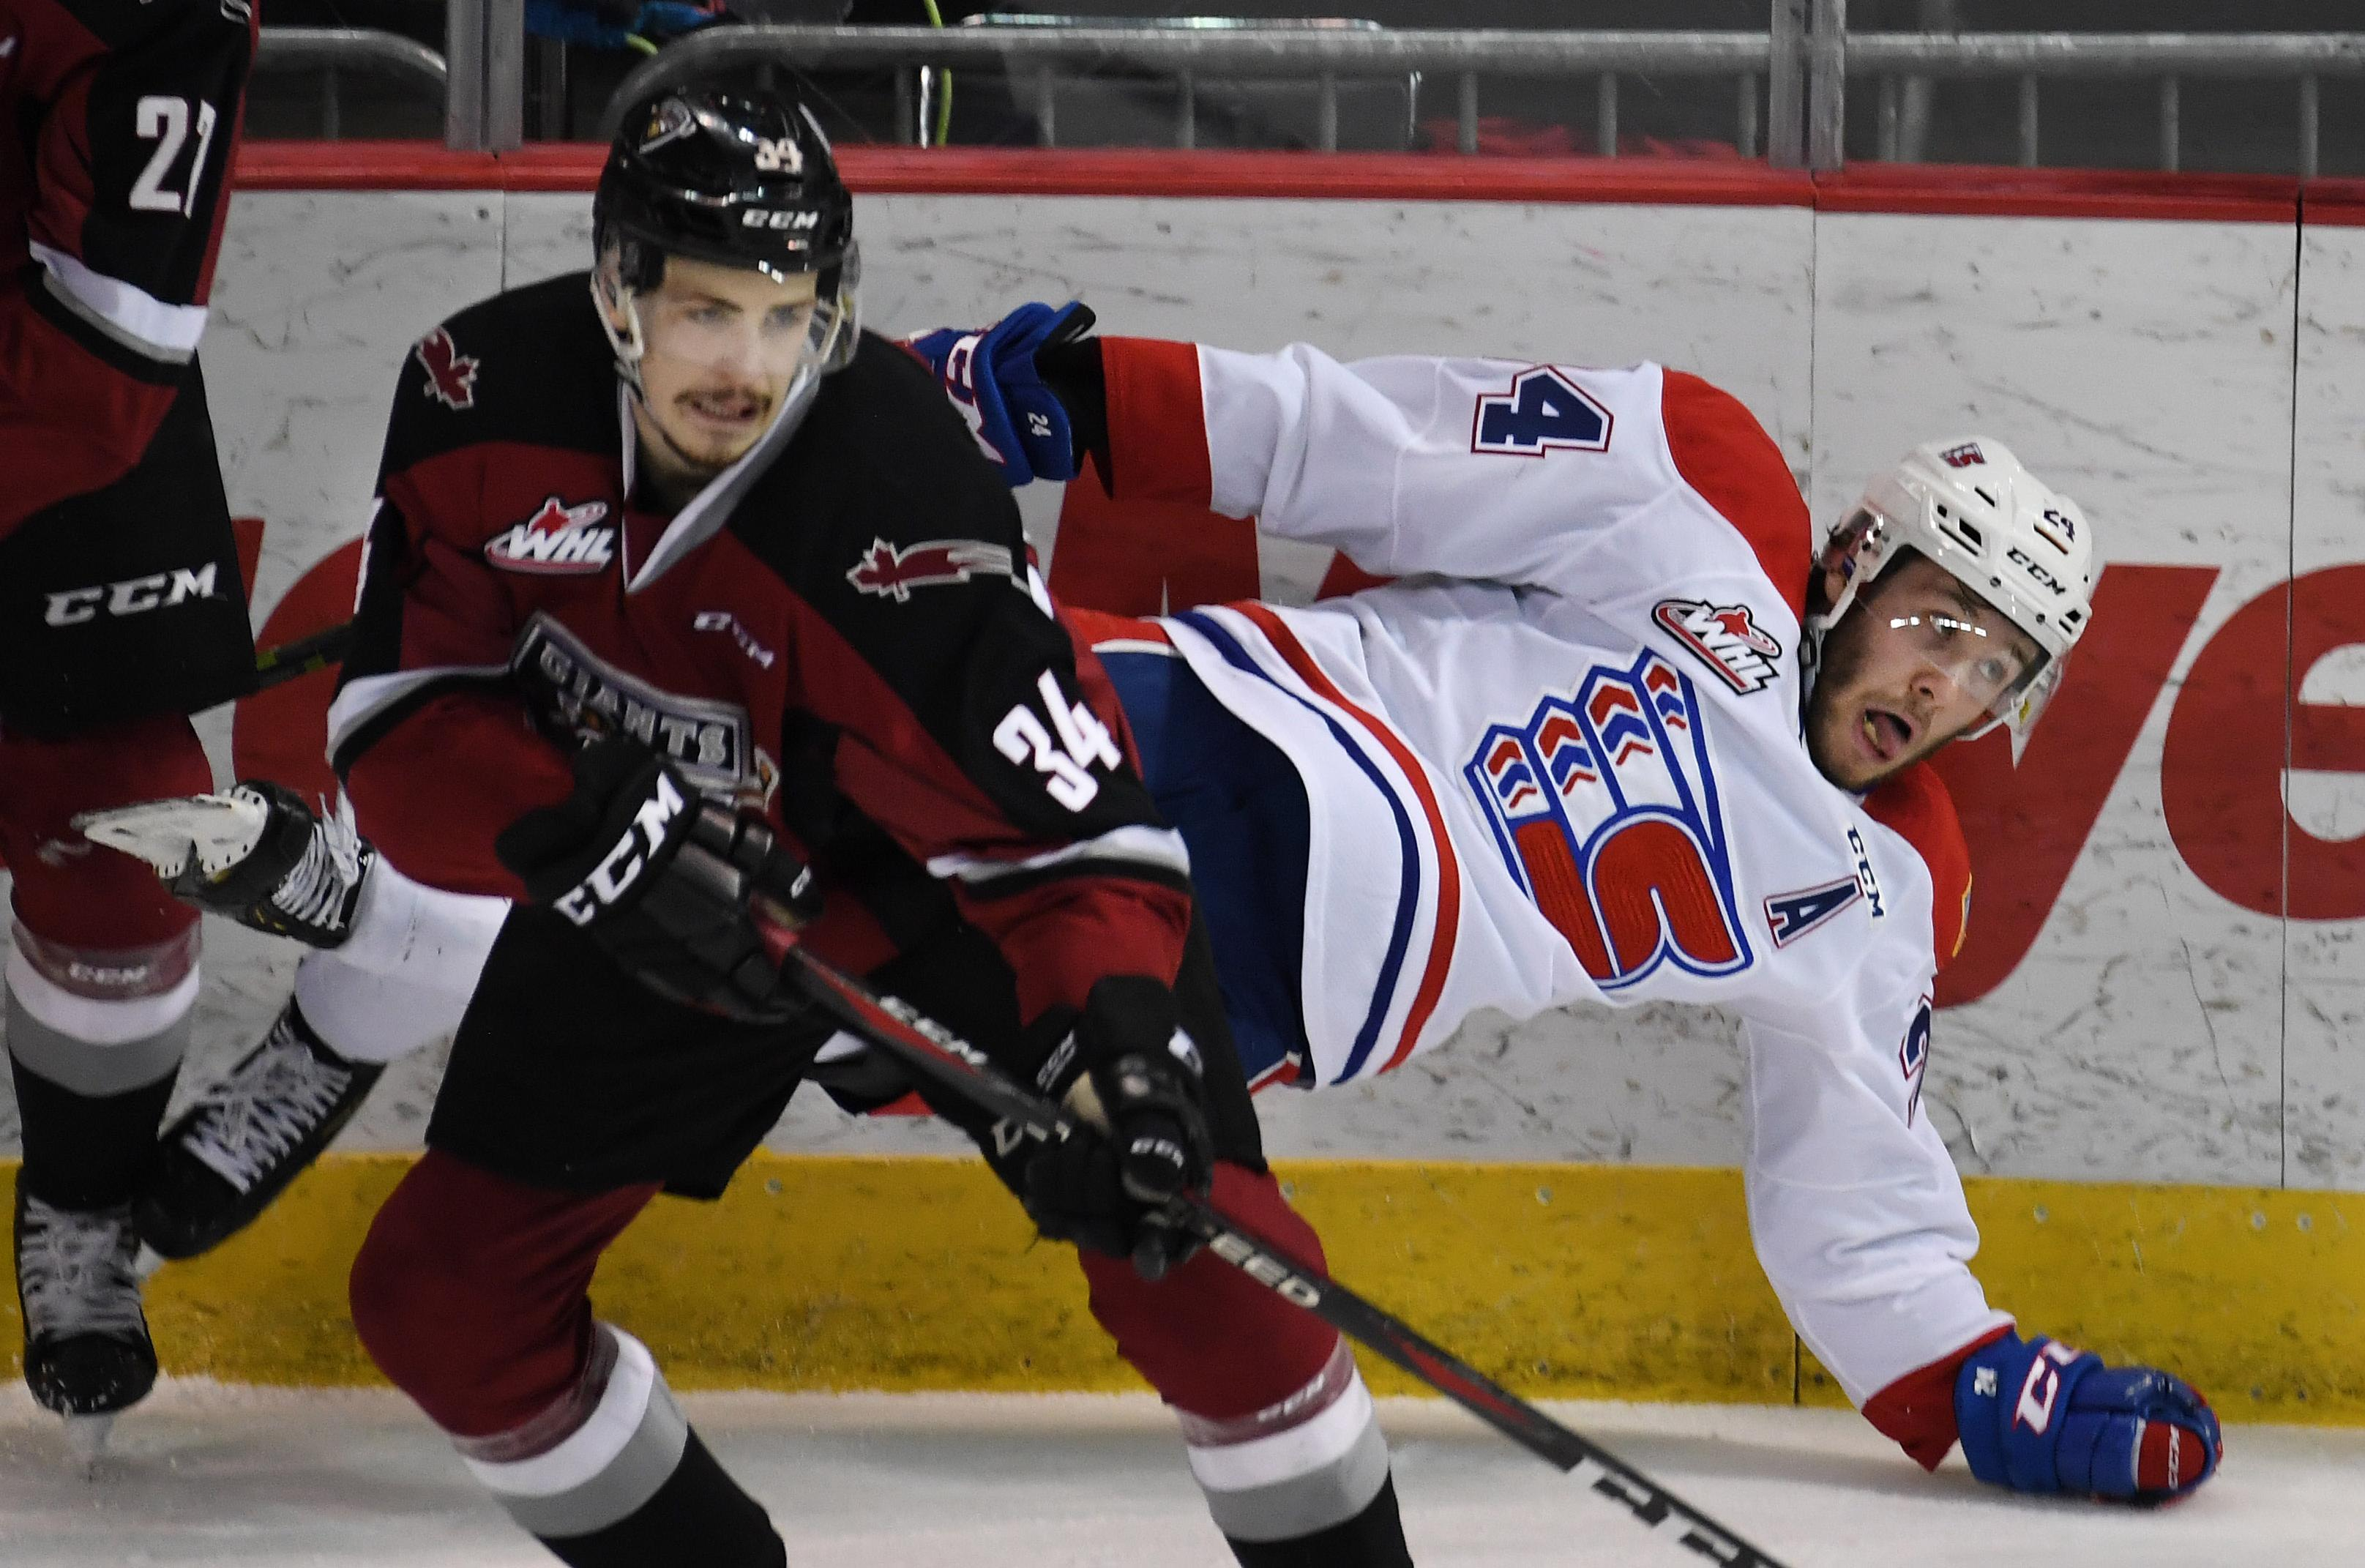 d6fc7d021 Spokane Chiefs forward Ty Smith falls after being checked on the boards by  Vancouver Giants forward